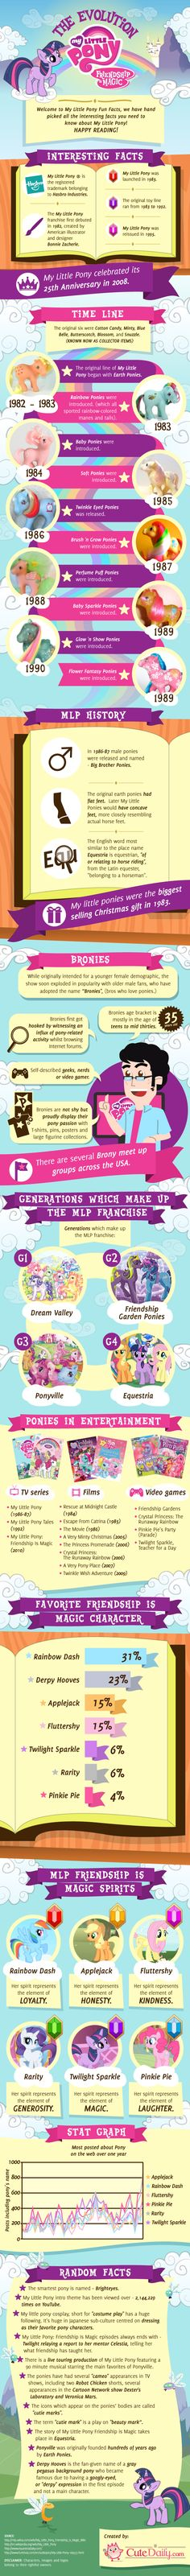 My Little Pony: The Evolution by ~cutedaily on deviantART